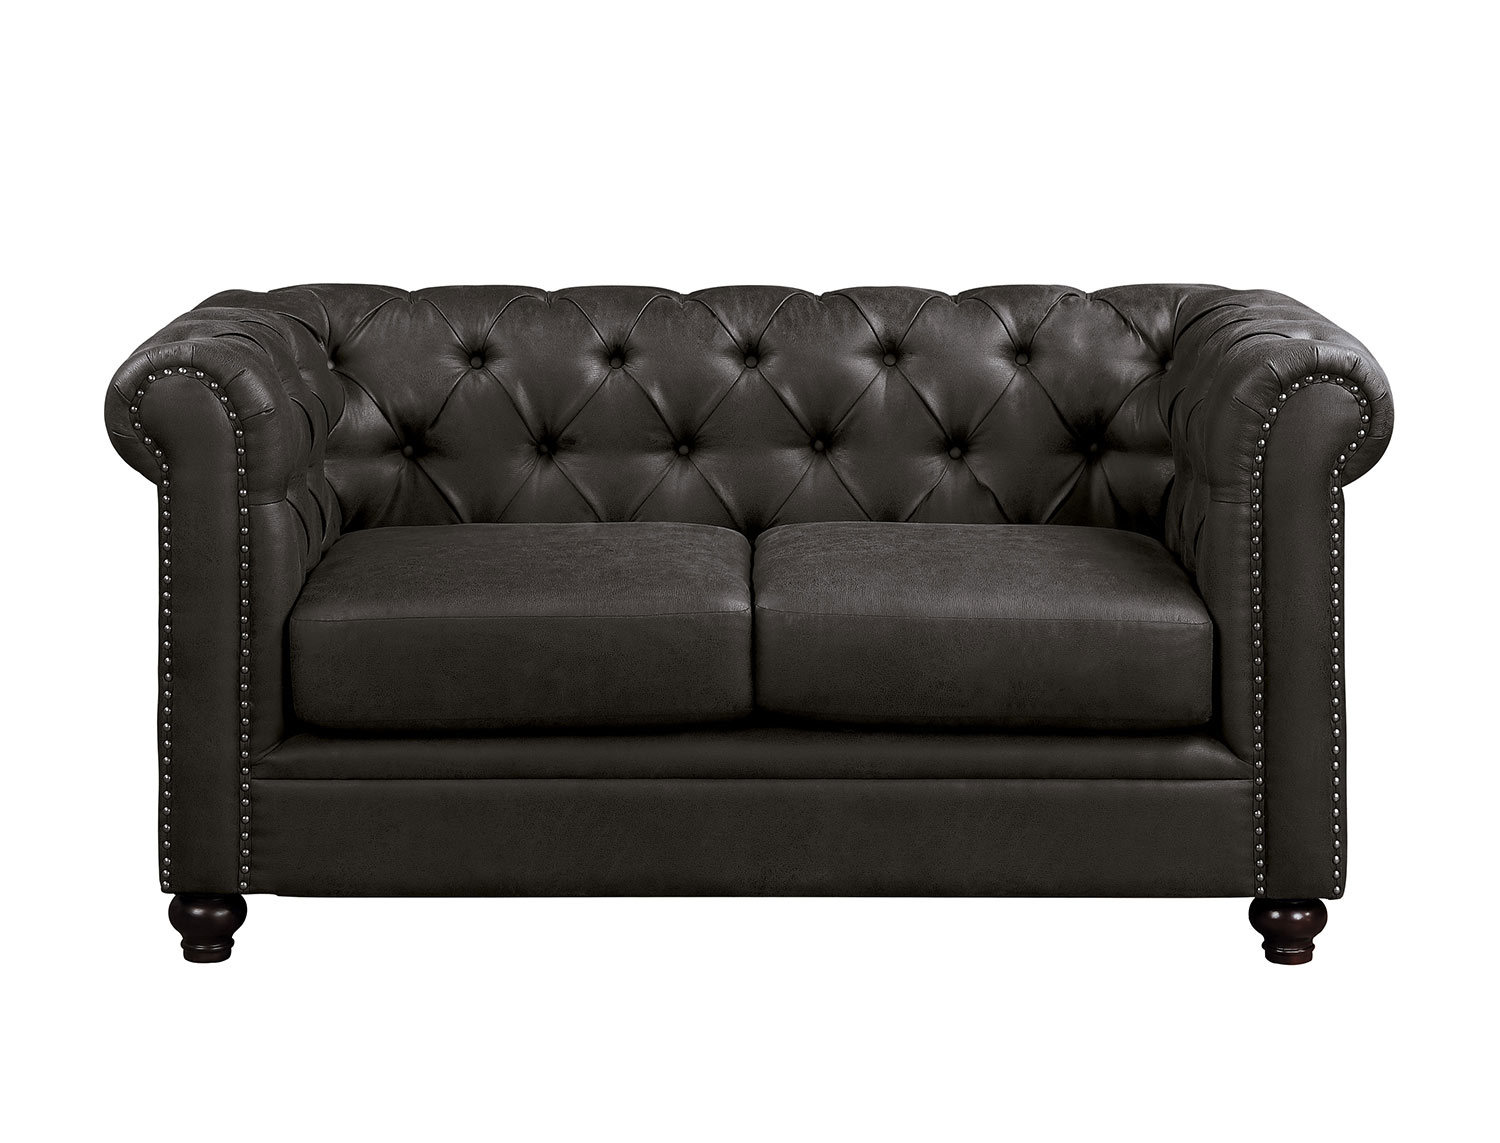 Homelegance Wallstone Love Seat - Brown